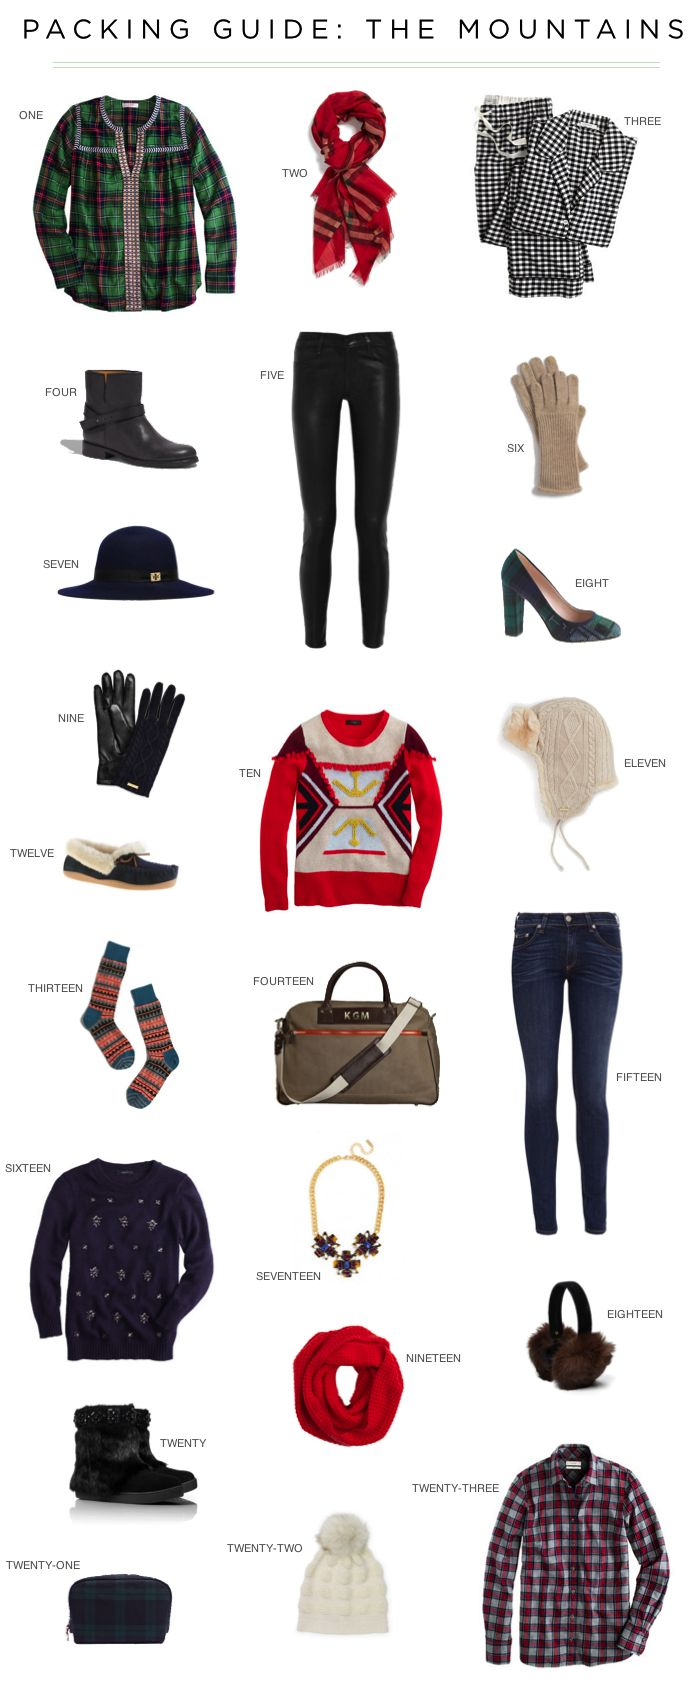 PLAN // Here is a visual packing guide for your next trip to the mountains. #spmvacations #sapphire #sugarmt